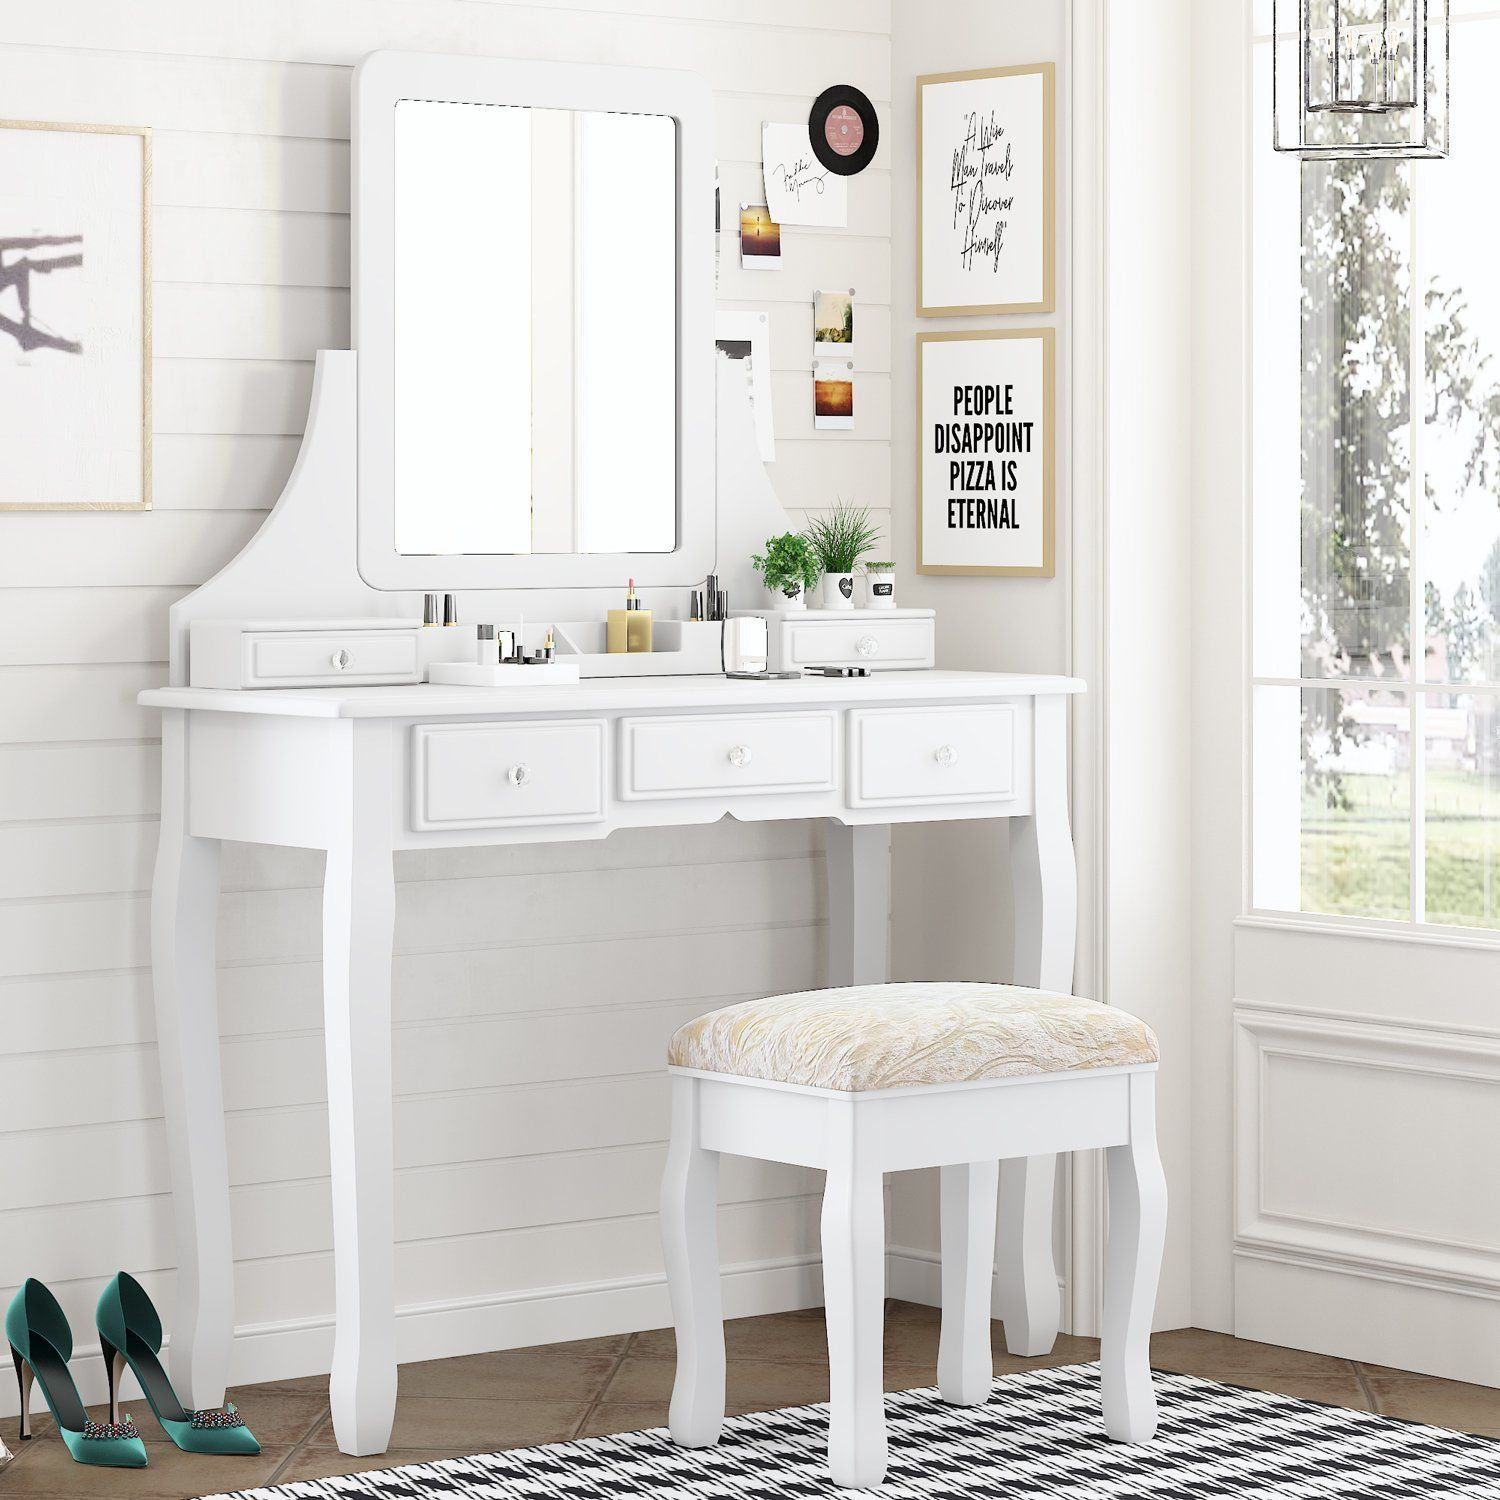 Makeup Vanity Table and Cushioned Stool Set, Dressing Table with 5 Storage Drawers, Bedroom Vanity Desk with Mirror for Women Girls - White